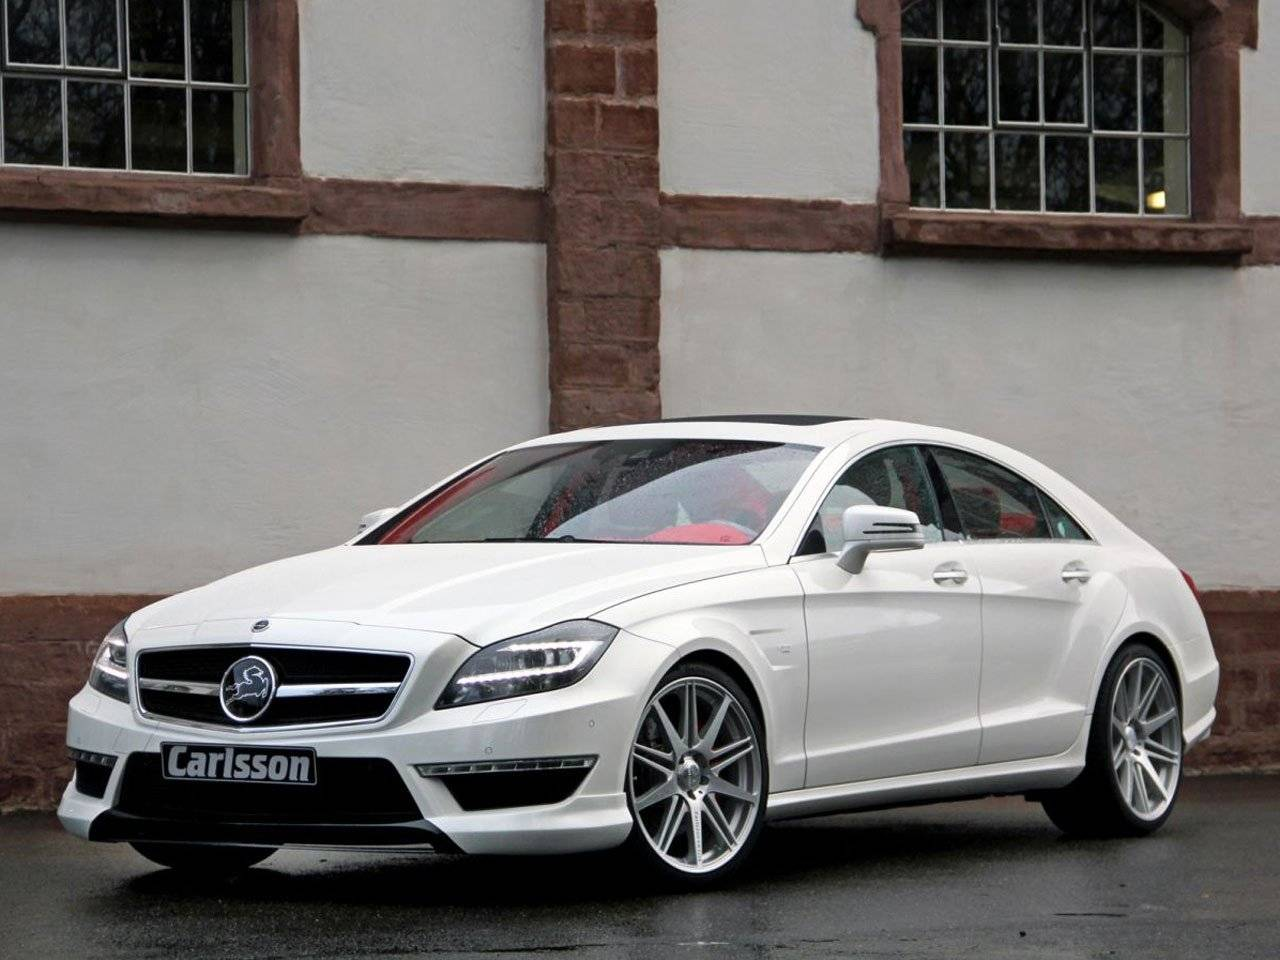 carlsson ontfermt zich over cls 63 amg tuning styling. Black Bedroom Furniture Sets. Home Design Ideas